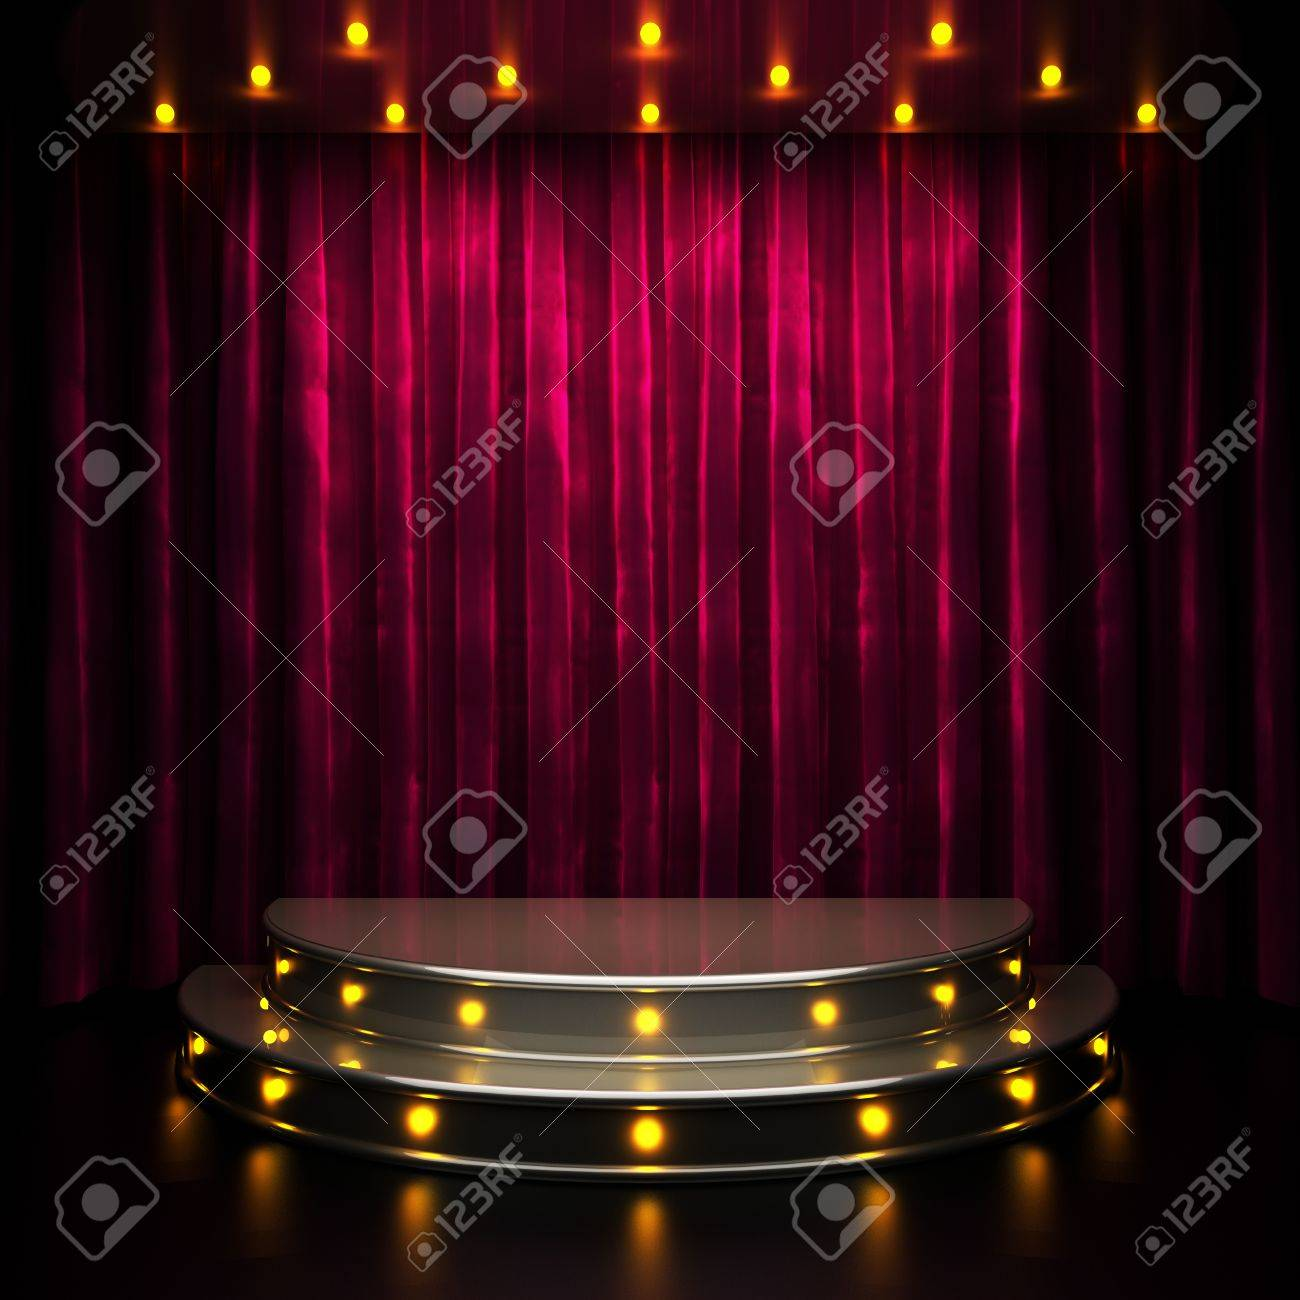 red curtain stage with lights - 34391857